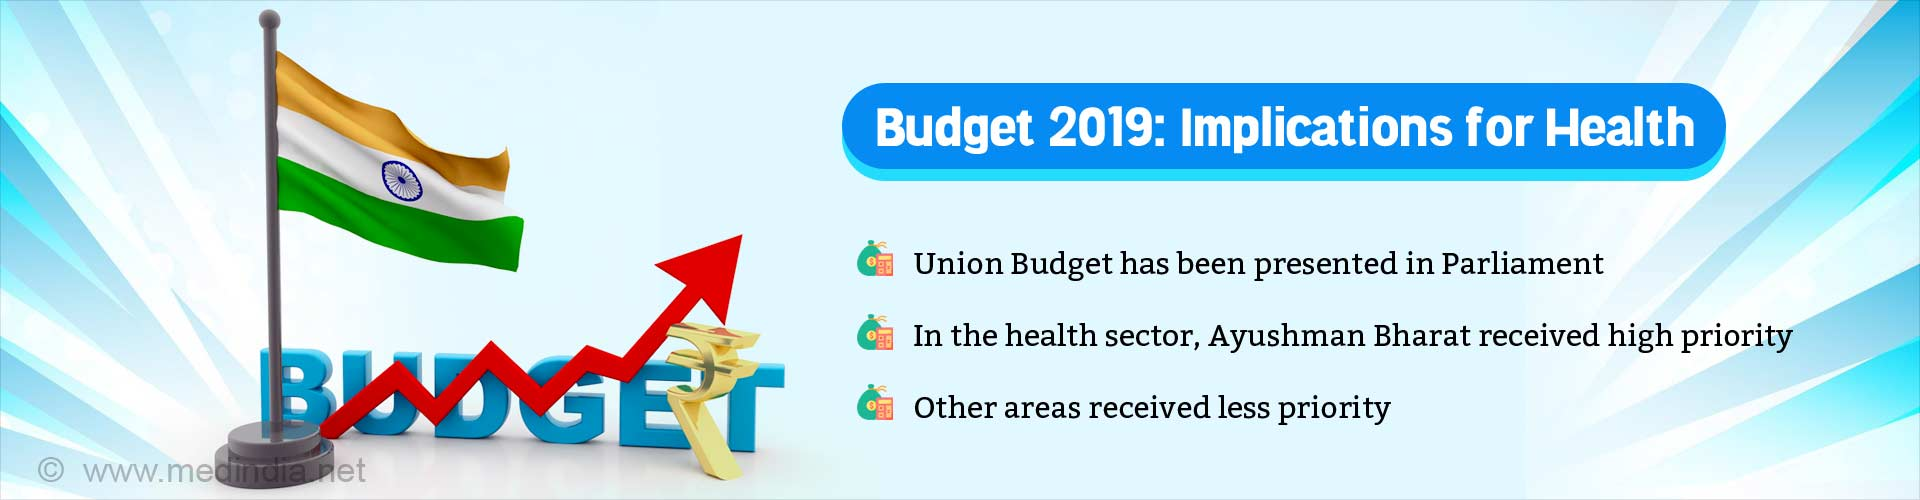 Budget 2019: What''s New in the Health Sector?